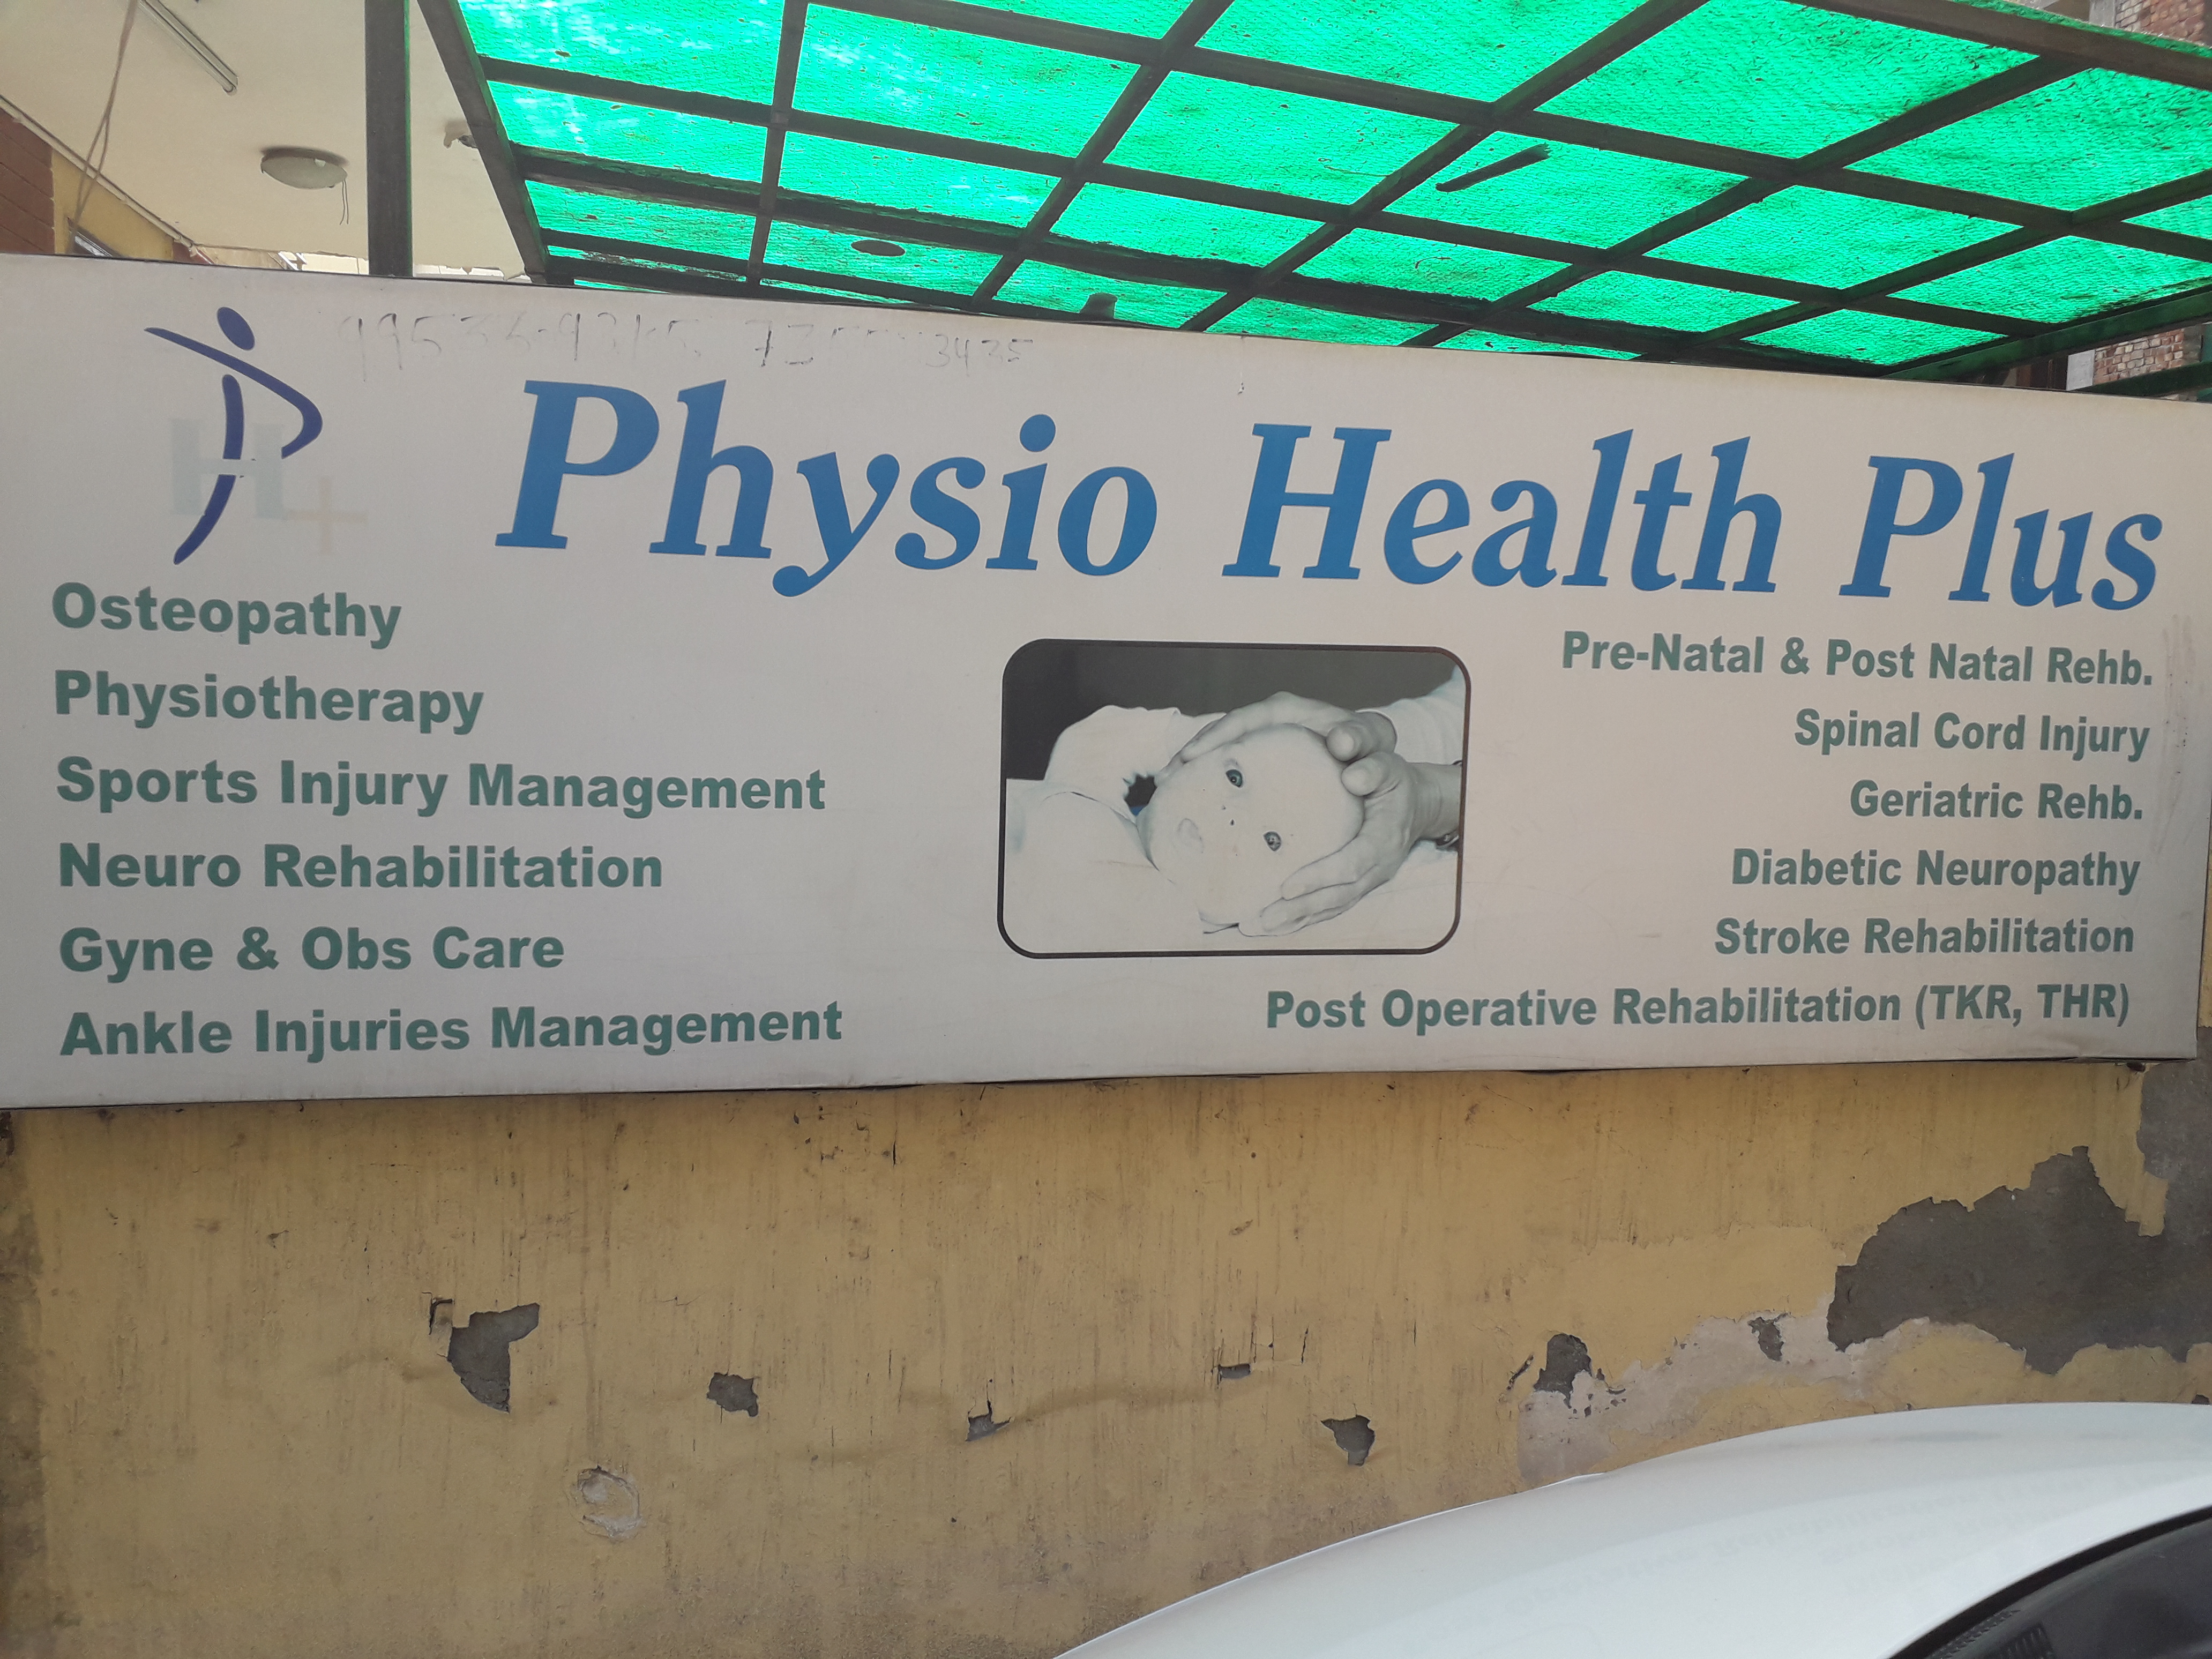 Top 10 Physiotherapists in Gurgaon, Physical Therapy